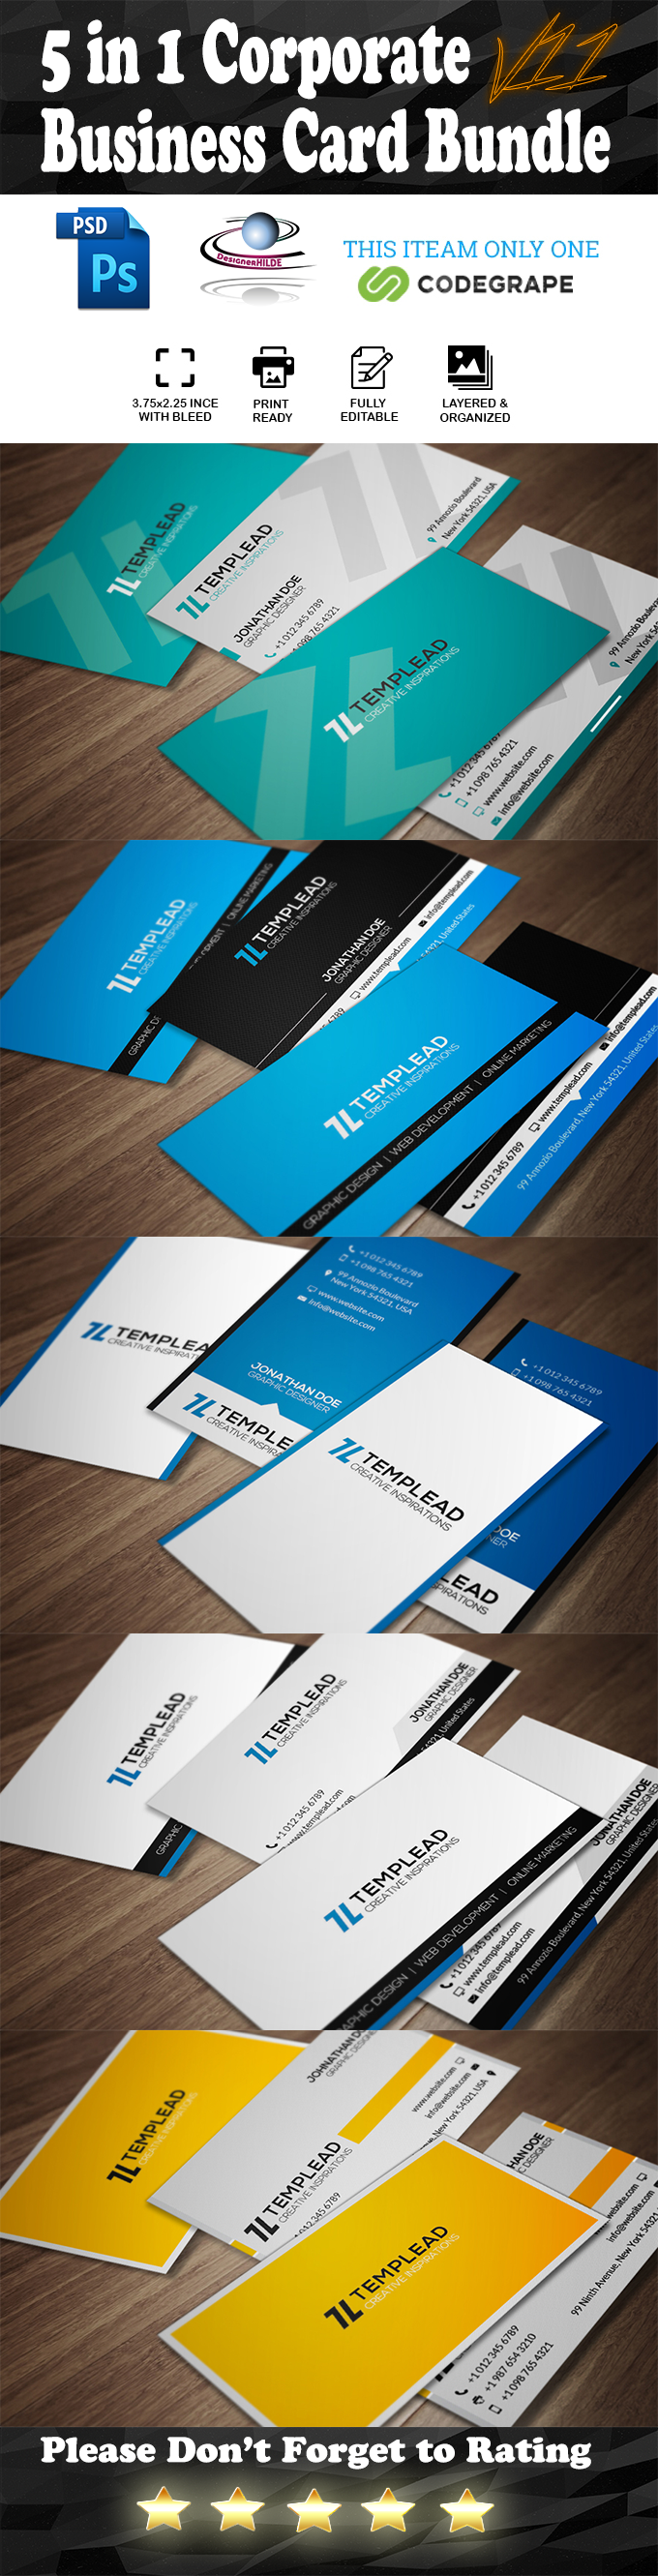 5 in 1 Corporate Business Card Bundle V.11